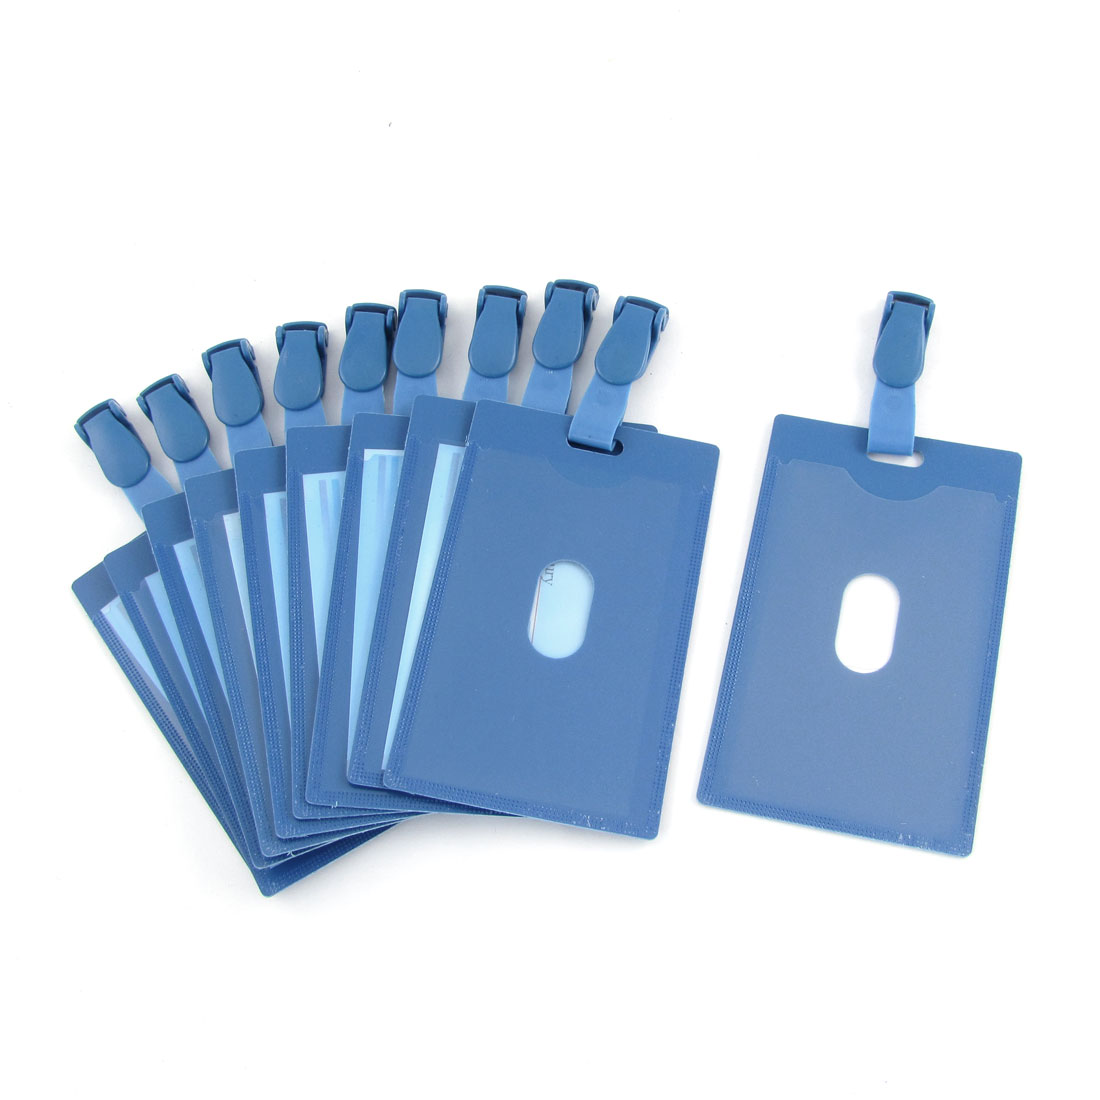 10PCS Blue Clear PVC Vertical ID Name Badge Card Holders w Clips